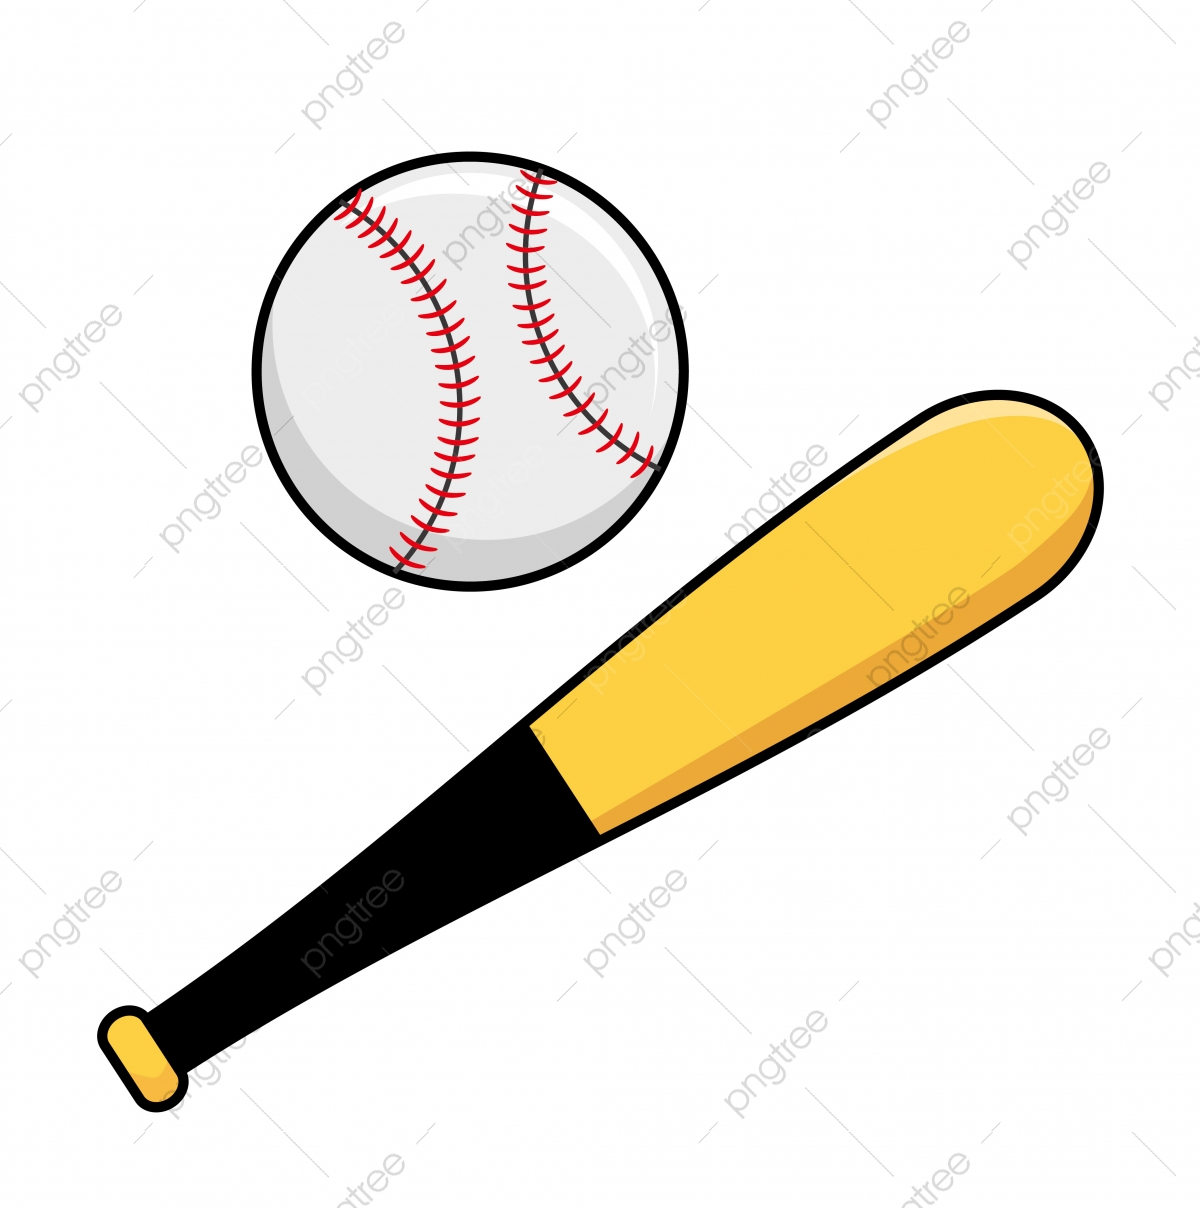 Baseball Bat And Ball Vector Illustration Isolated On White Background Baseball Clip Art Baseball Bat Ball Png And Vector With Transparent Background For Free Download